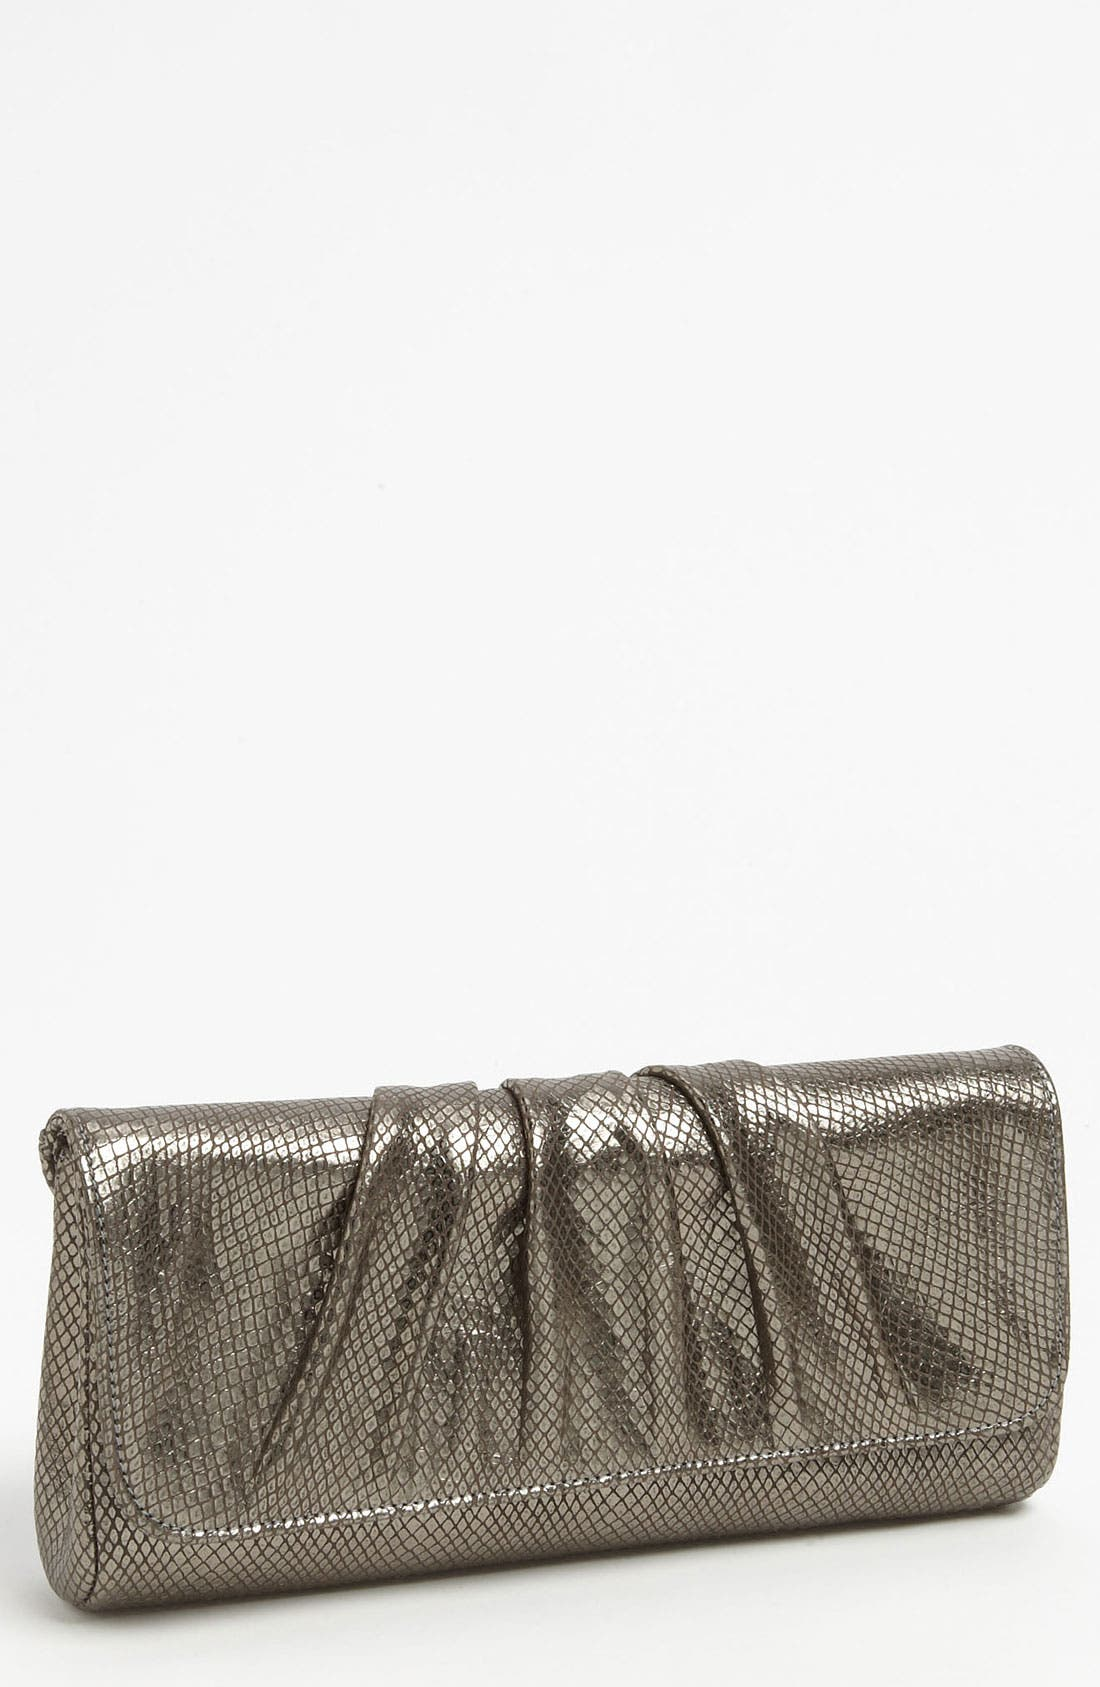 Alternate Image 1 Selected - Lauren Merkin 'Caroline' Clutch